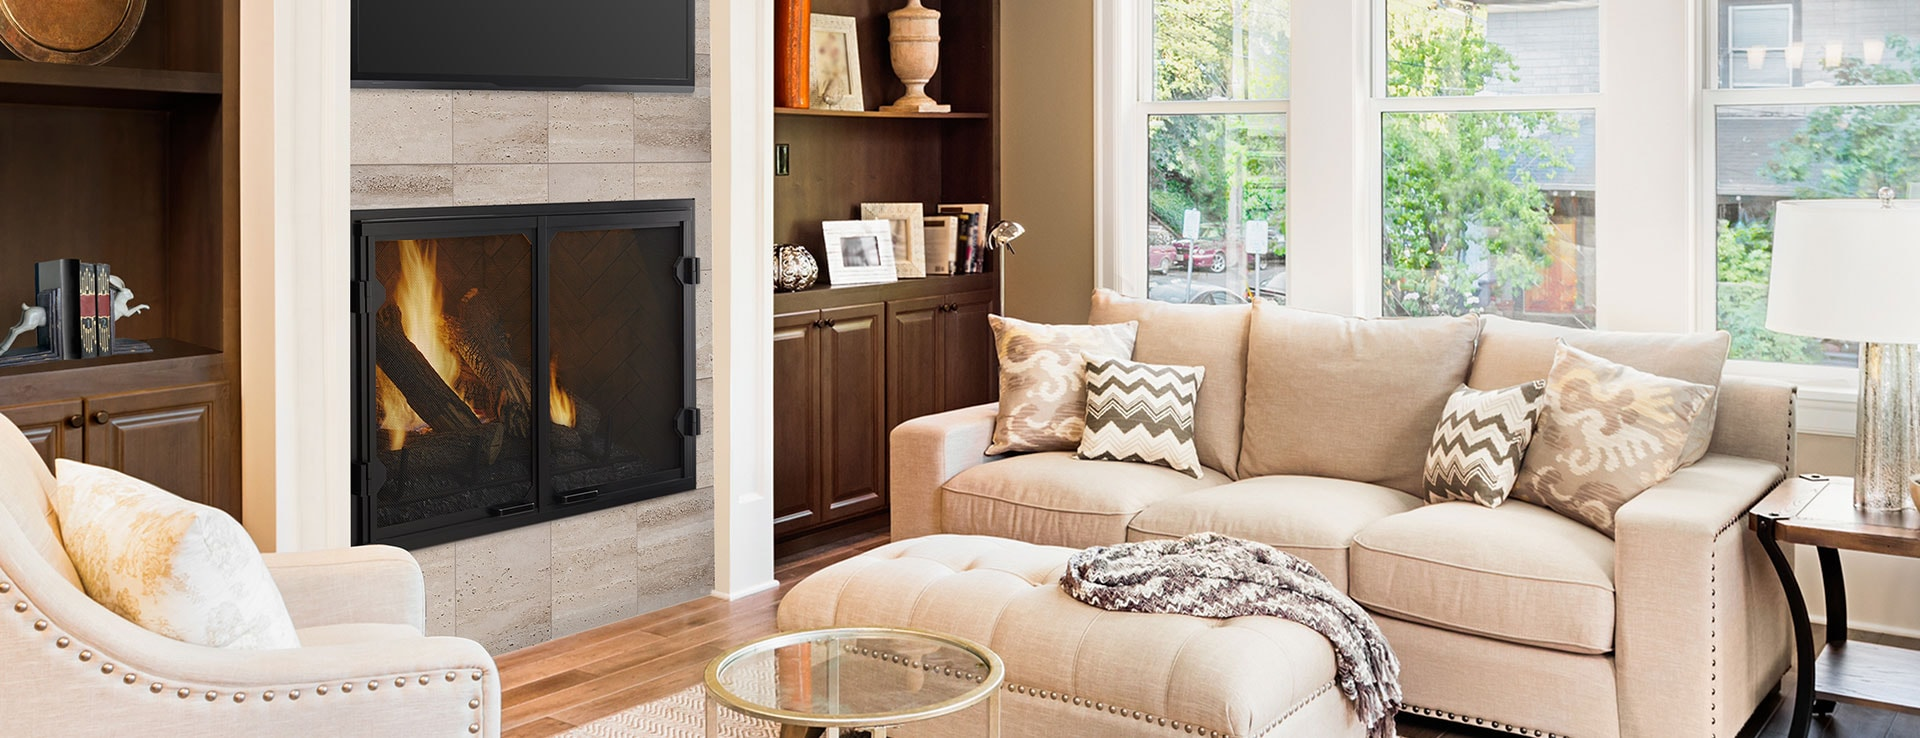 <p>Legacy TrueView Gas Fireplace</p>